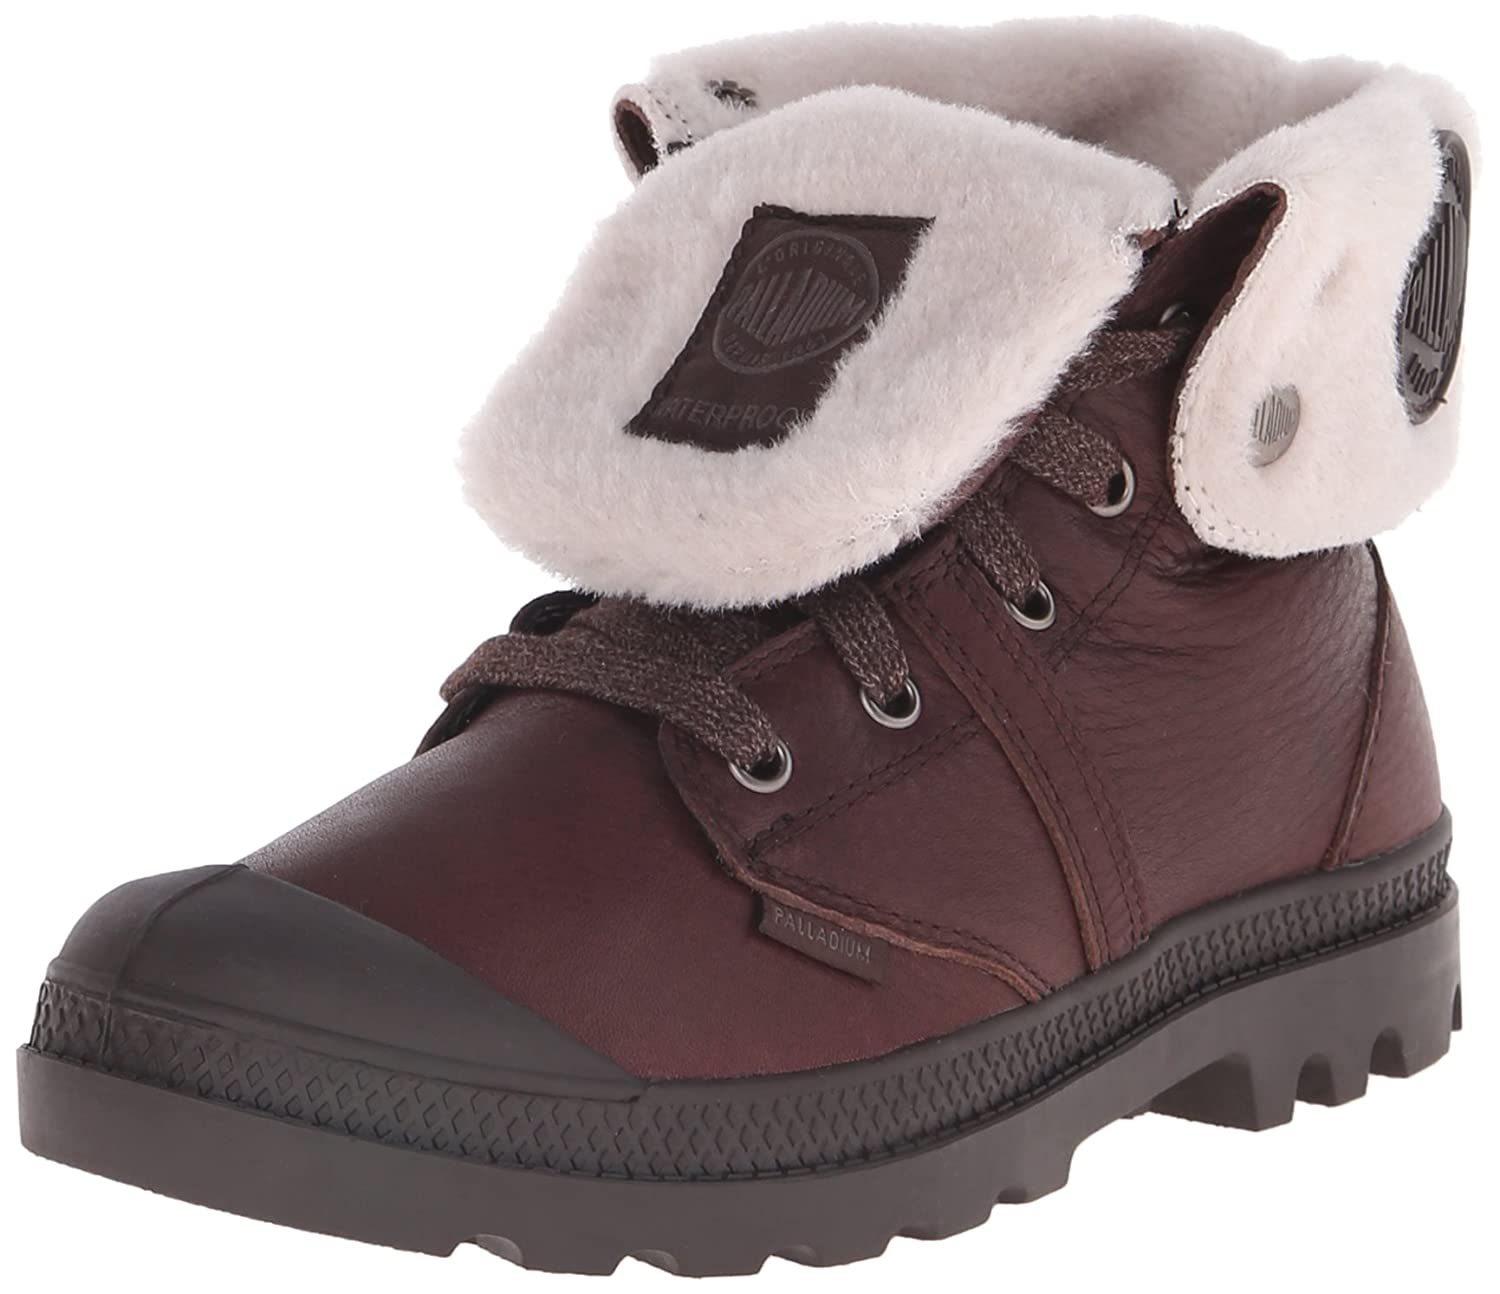 Palladium Women's Pallabrouse Baggy WPS Rain Boot B00T3P405Y 7.5 B(M) US|Chocolate